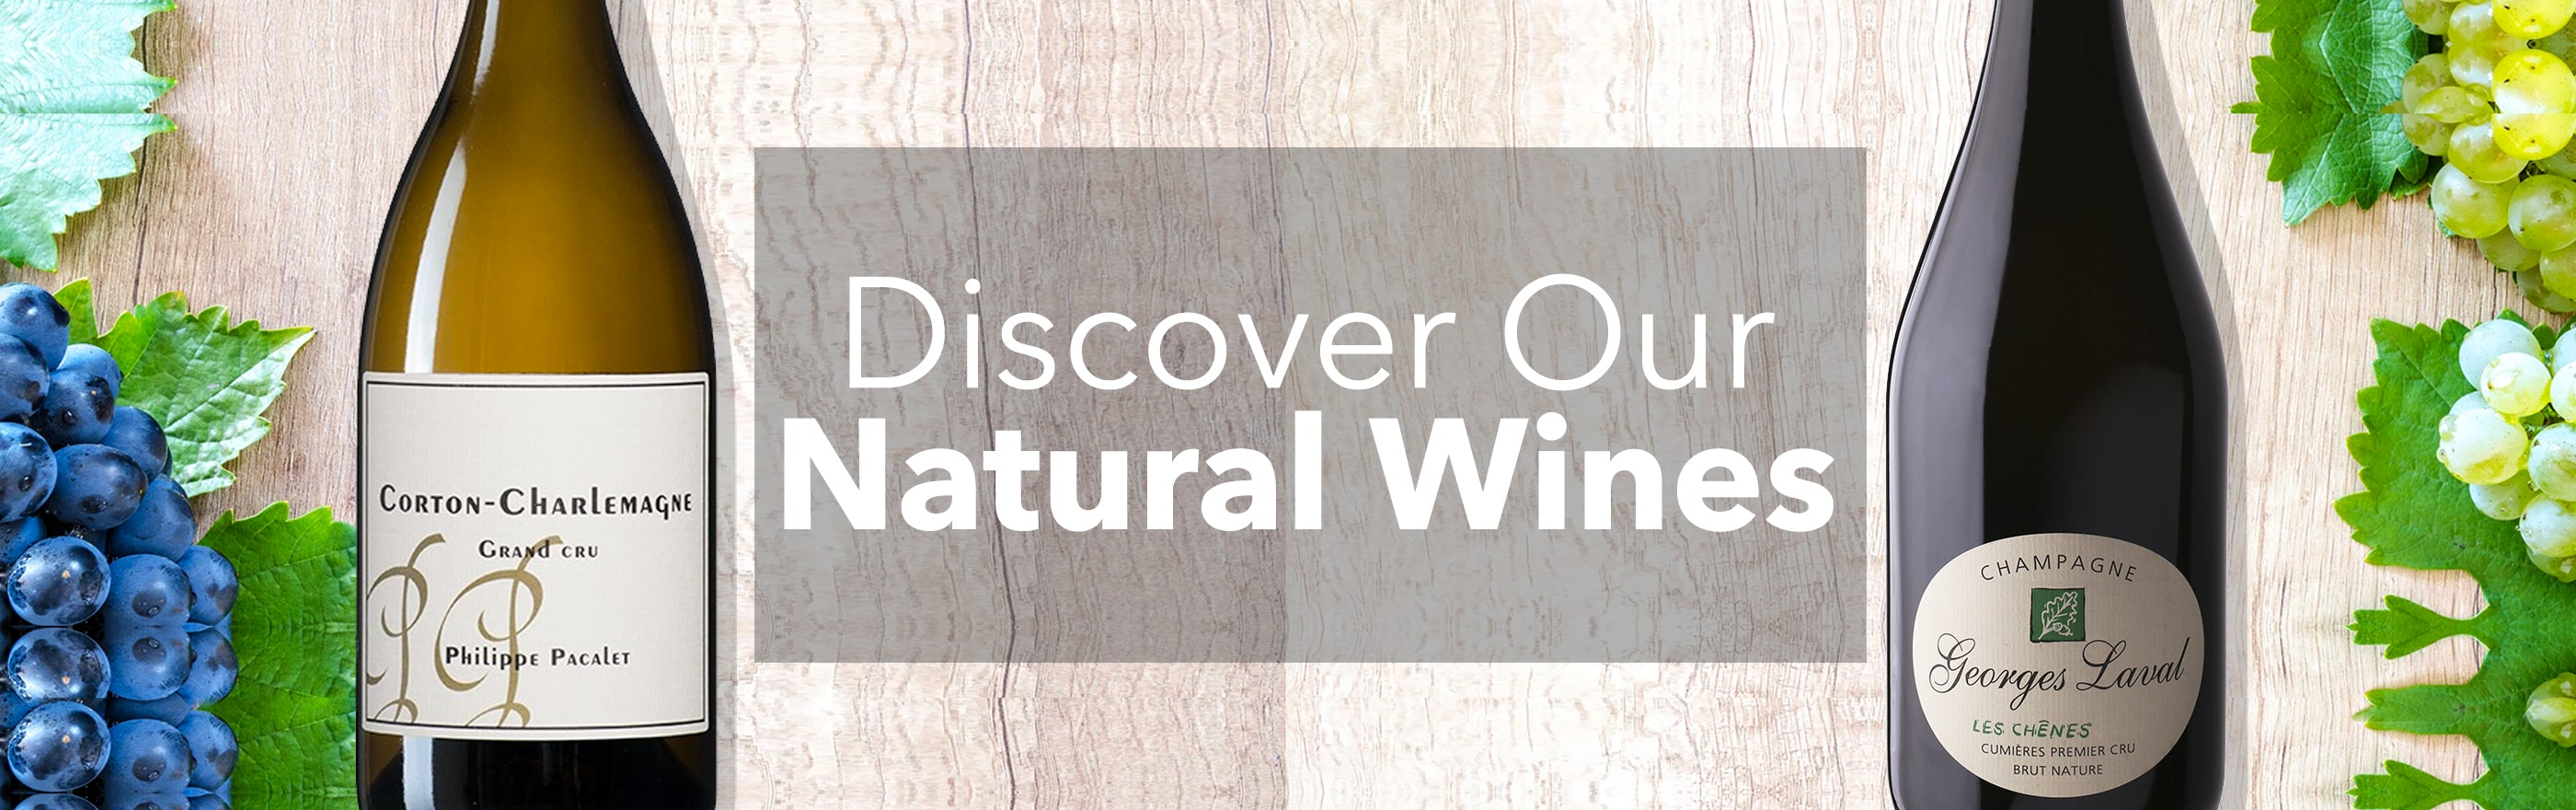 Buy Natural Wines - Online store